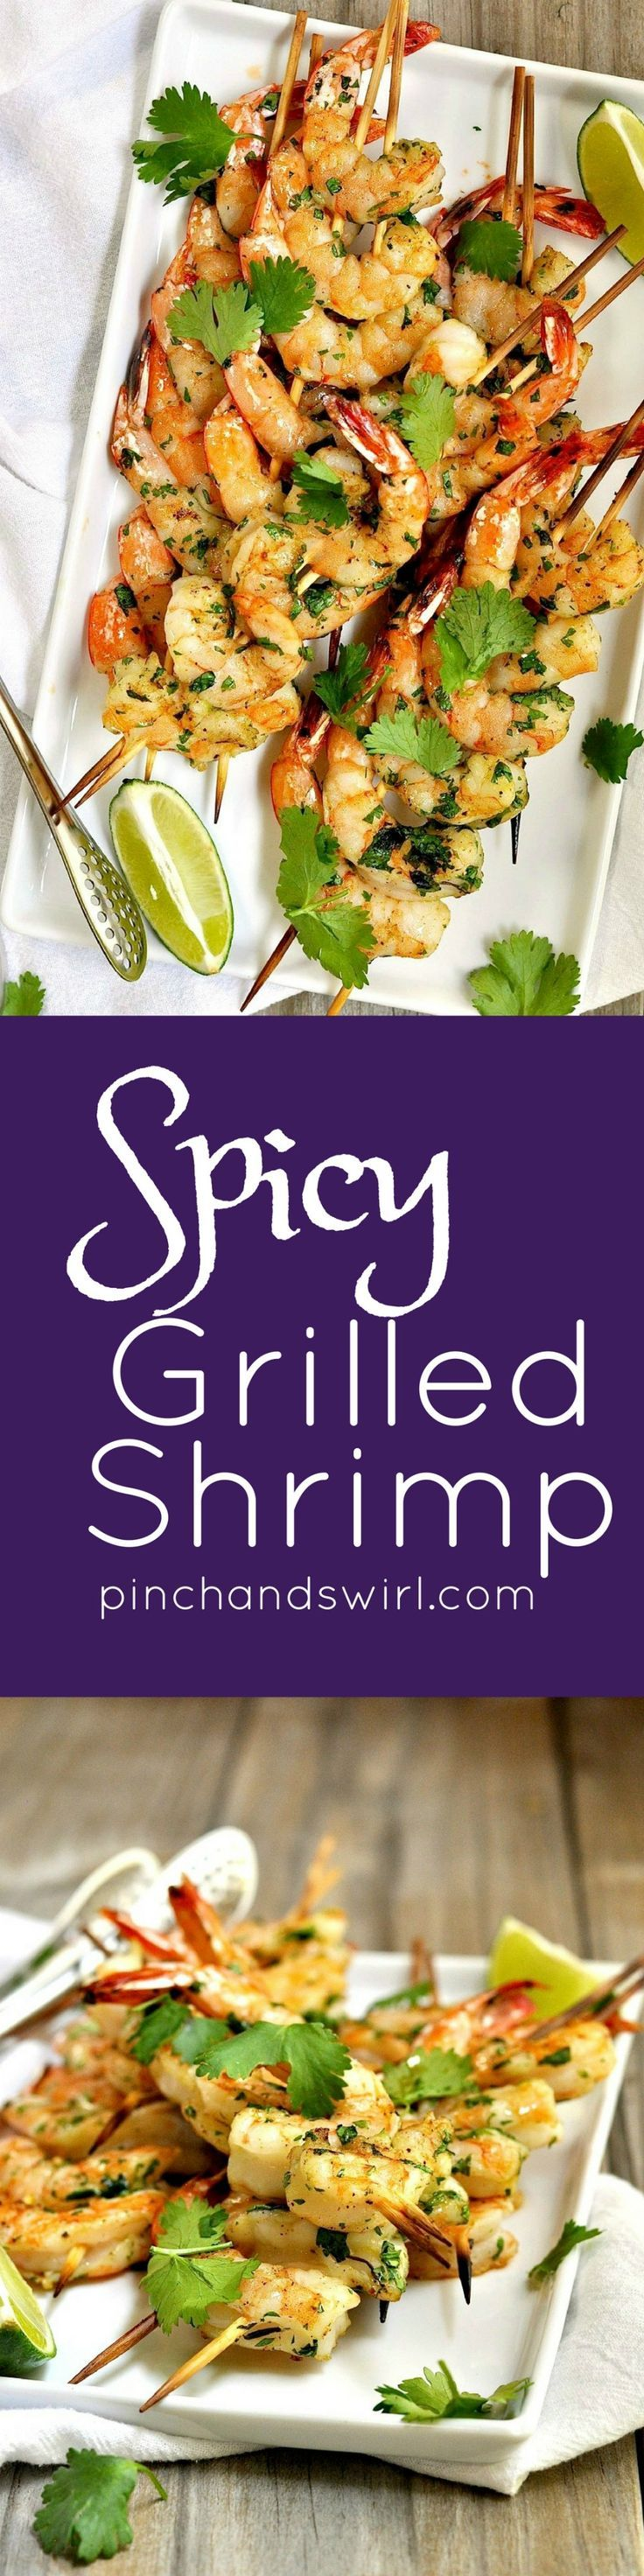 Spicy grilled shrimp are easy to assemble and cook in about 5 minutes. A simple marinade of cilantro with a kick of cayenne pepper make these a delicious and spicy-as-you-like addition to summer meals. String the shrimp onto two skewers to them very easy to turn on the grill.